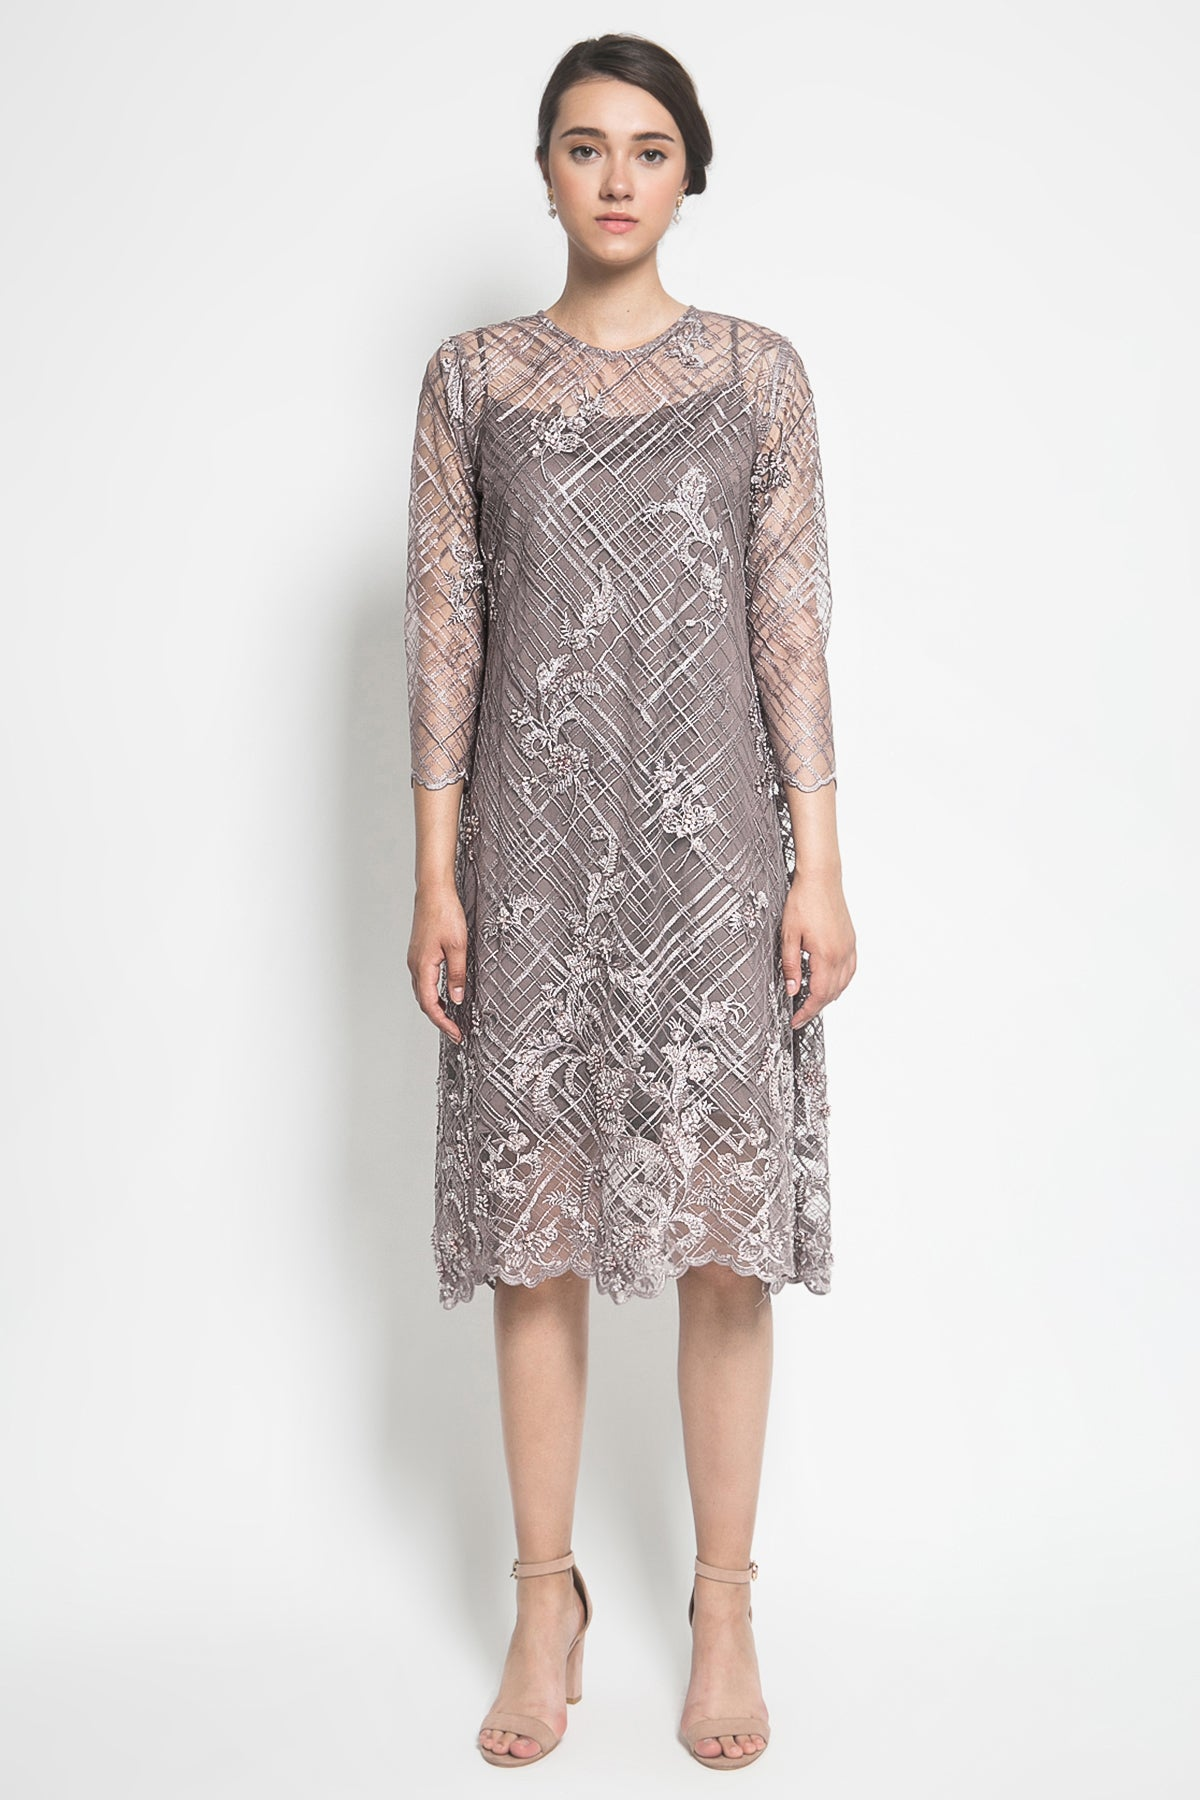 Adara Official Cathya Dress in Lavender